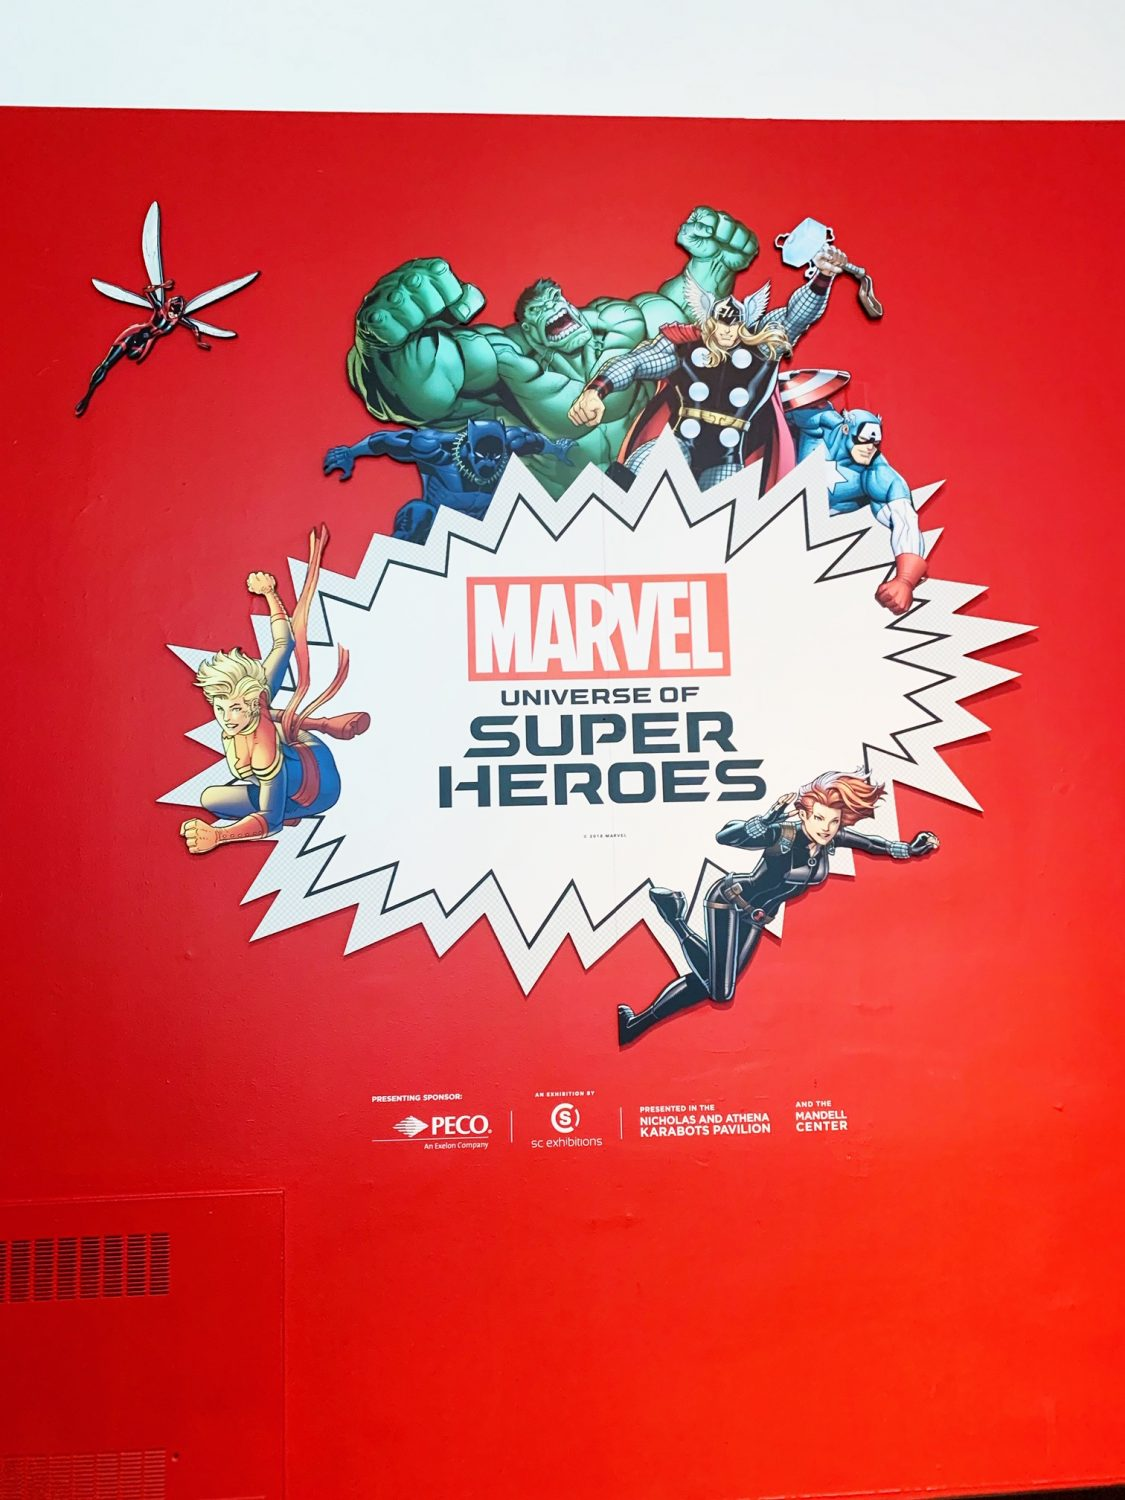 Marvel: Universe of Super Heroes Exhibit at The Franklin Institute